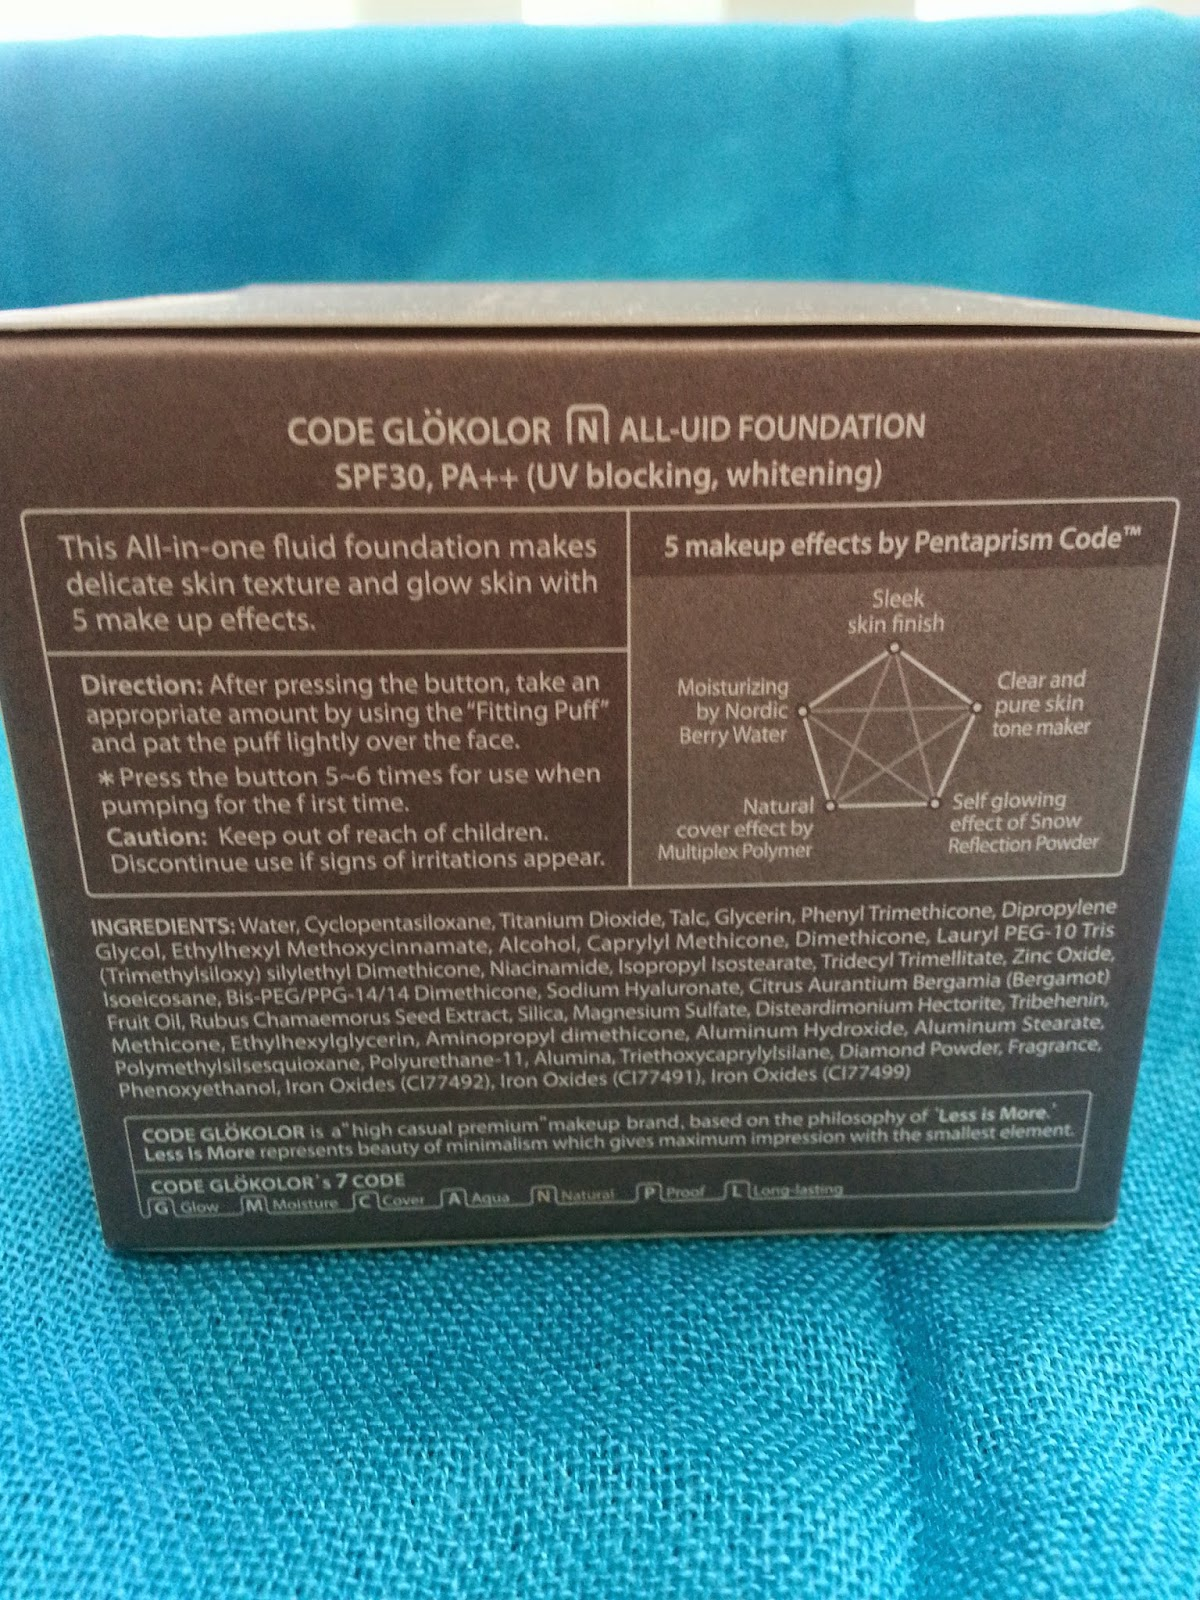 CODE Glokolor N. All-UID Foundation side